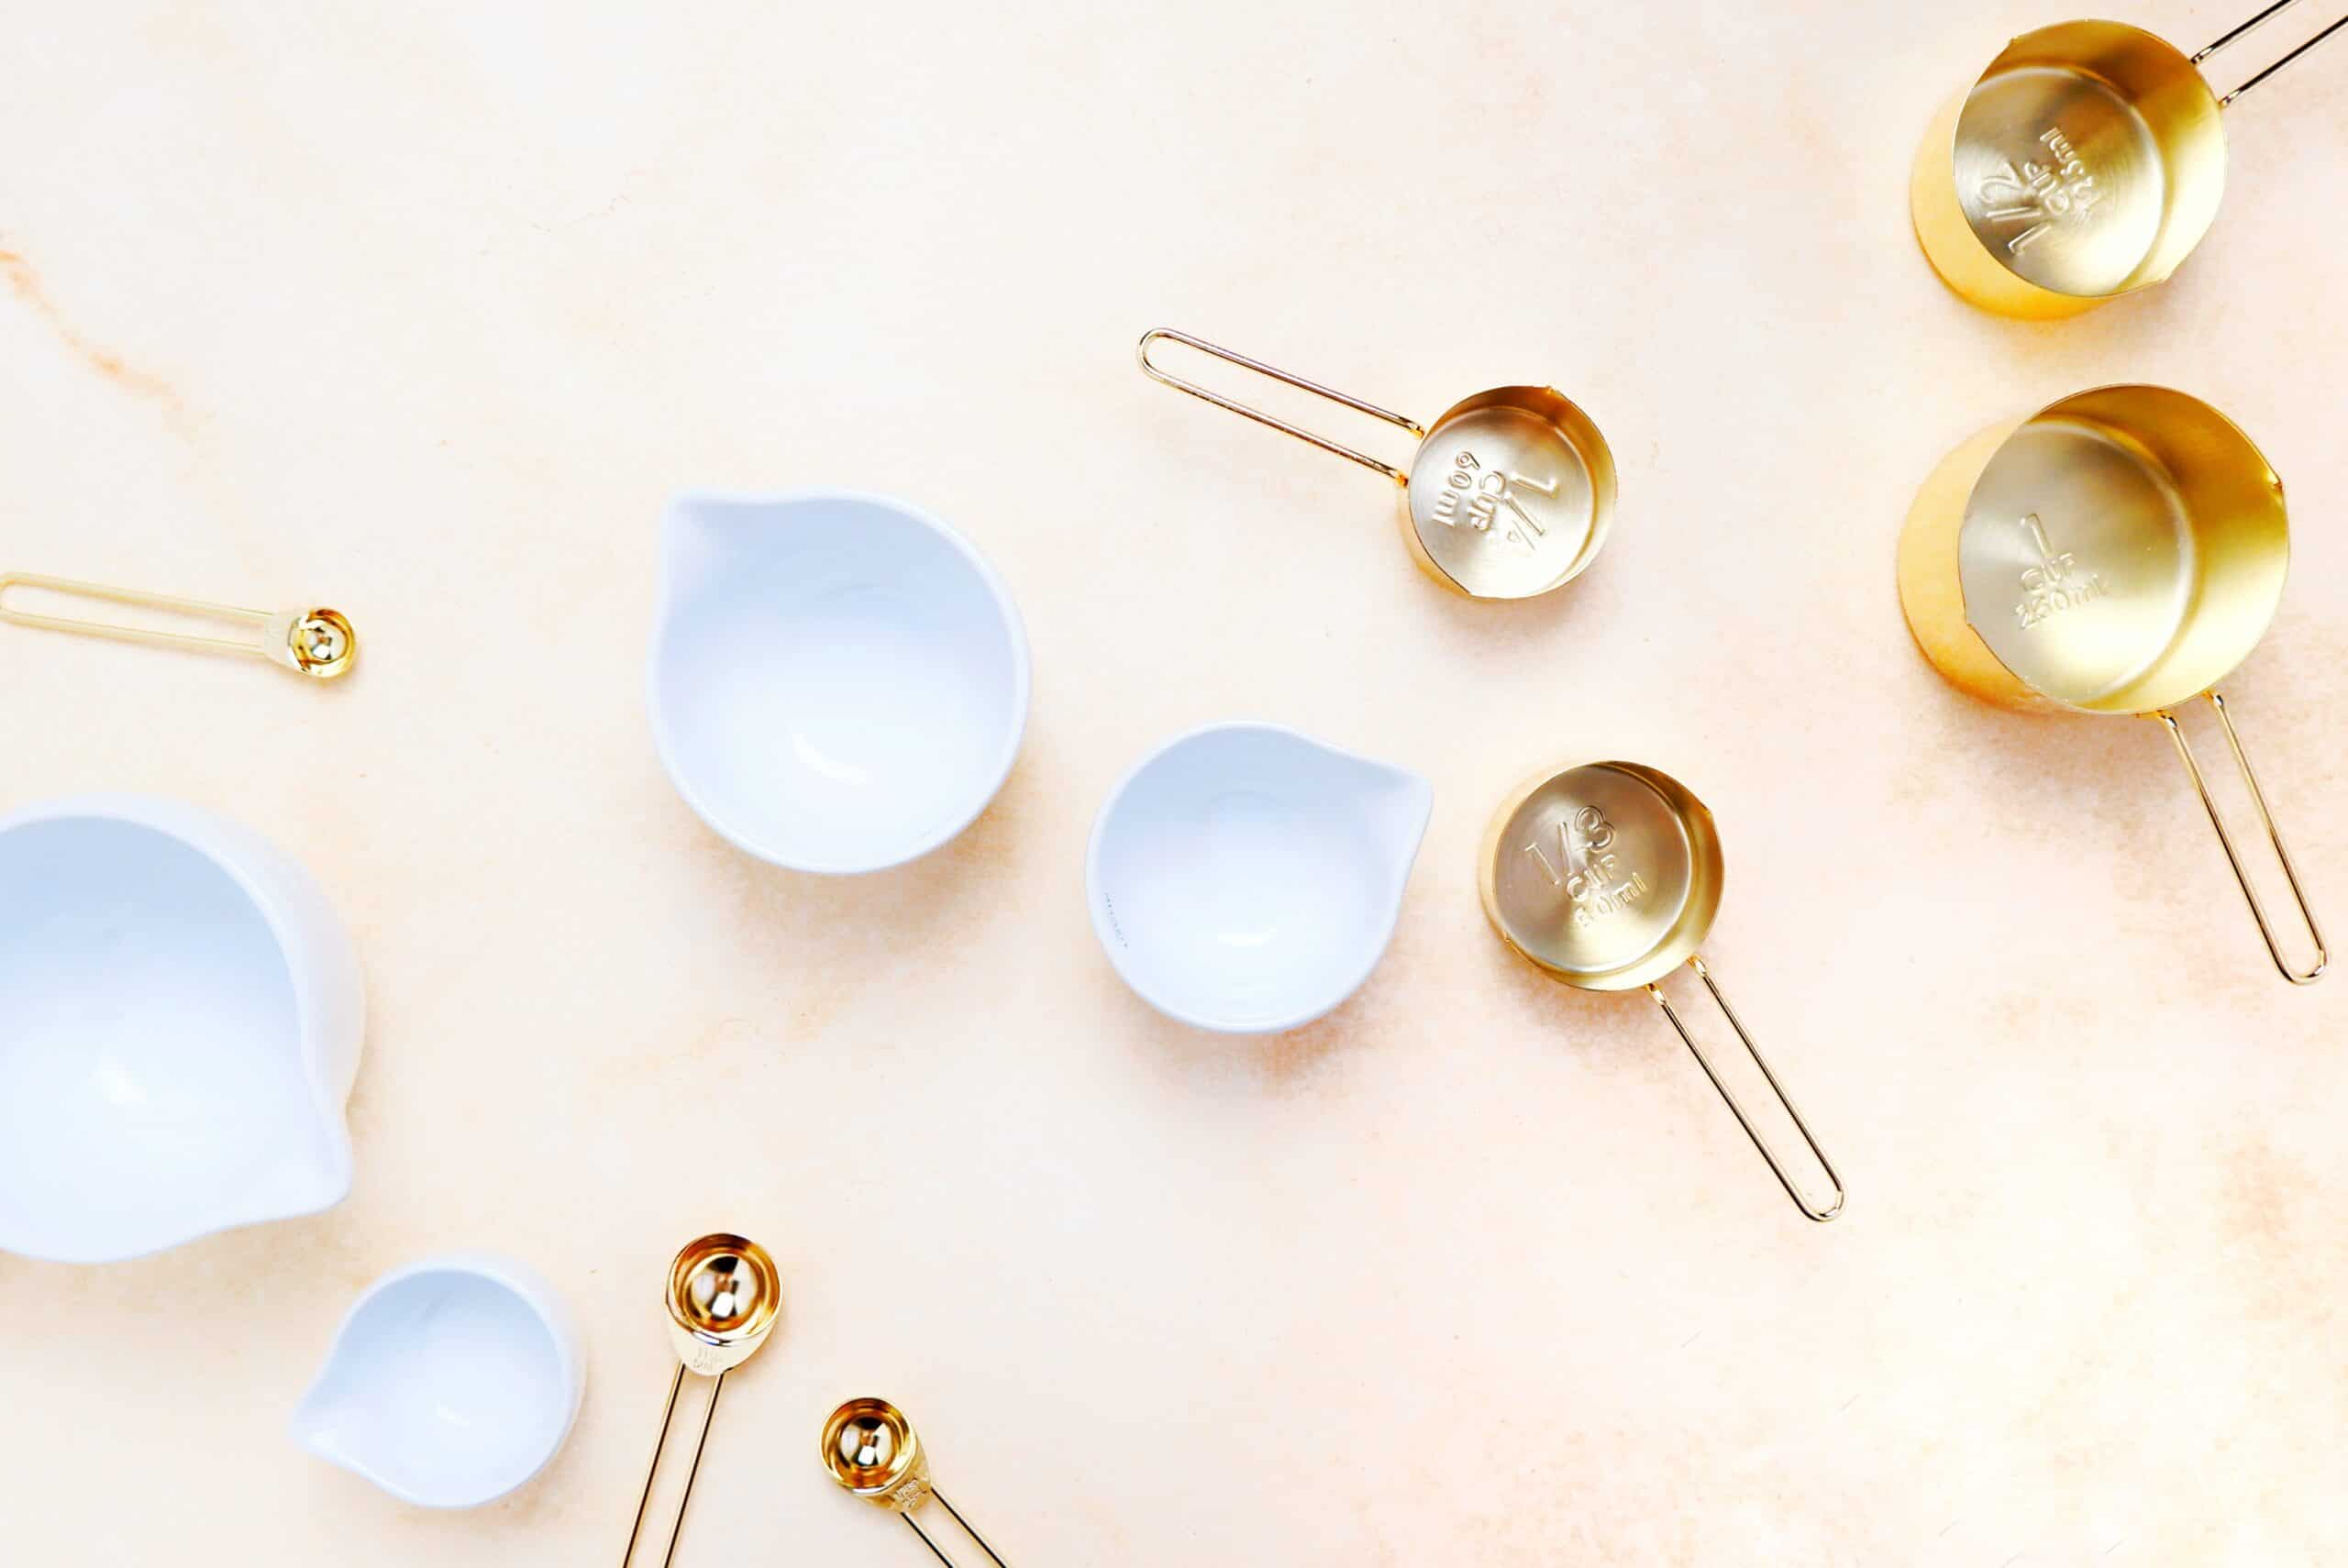 empty measuring cups in whilte and gold scattered on an orange backdrop.